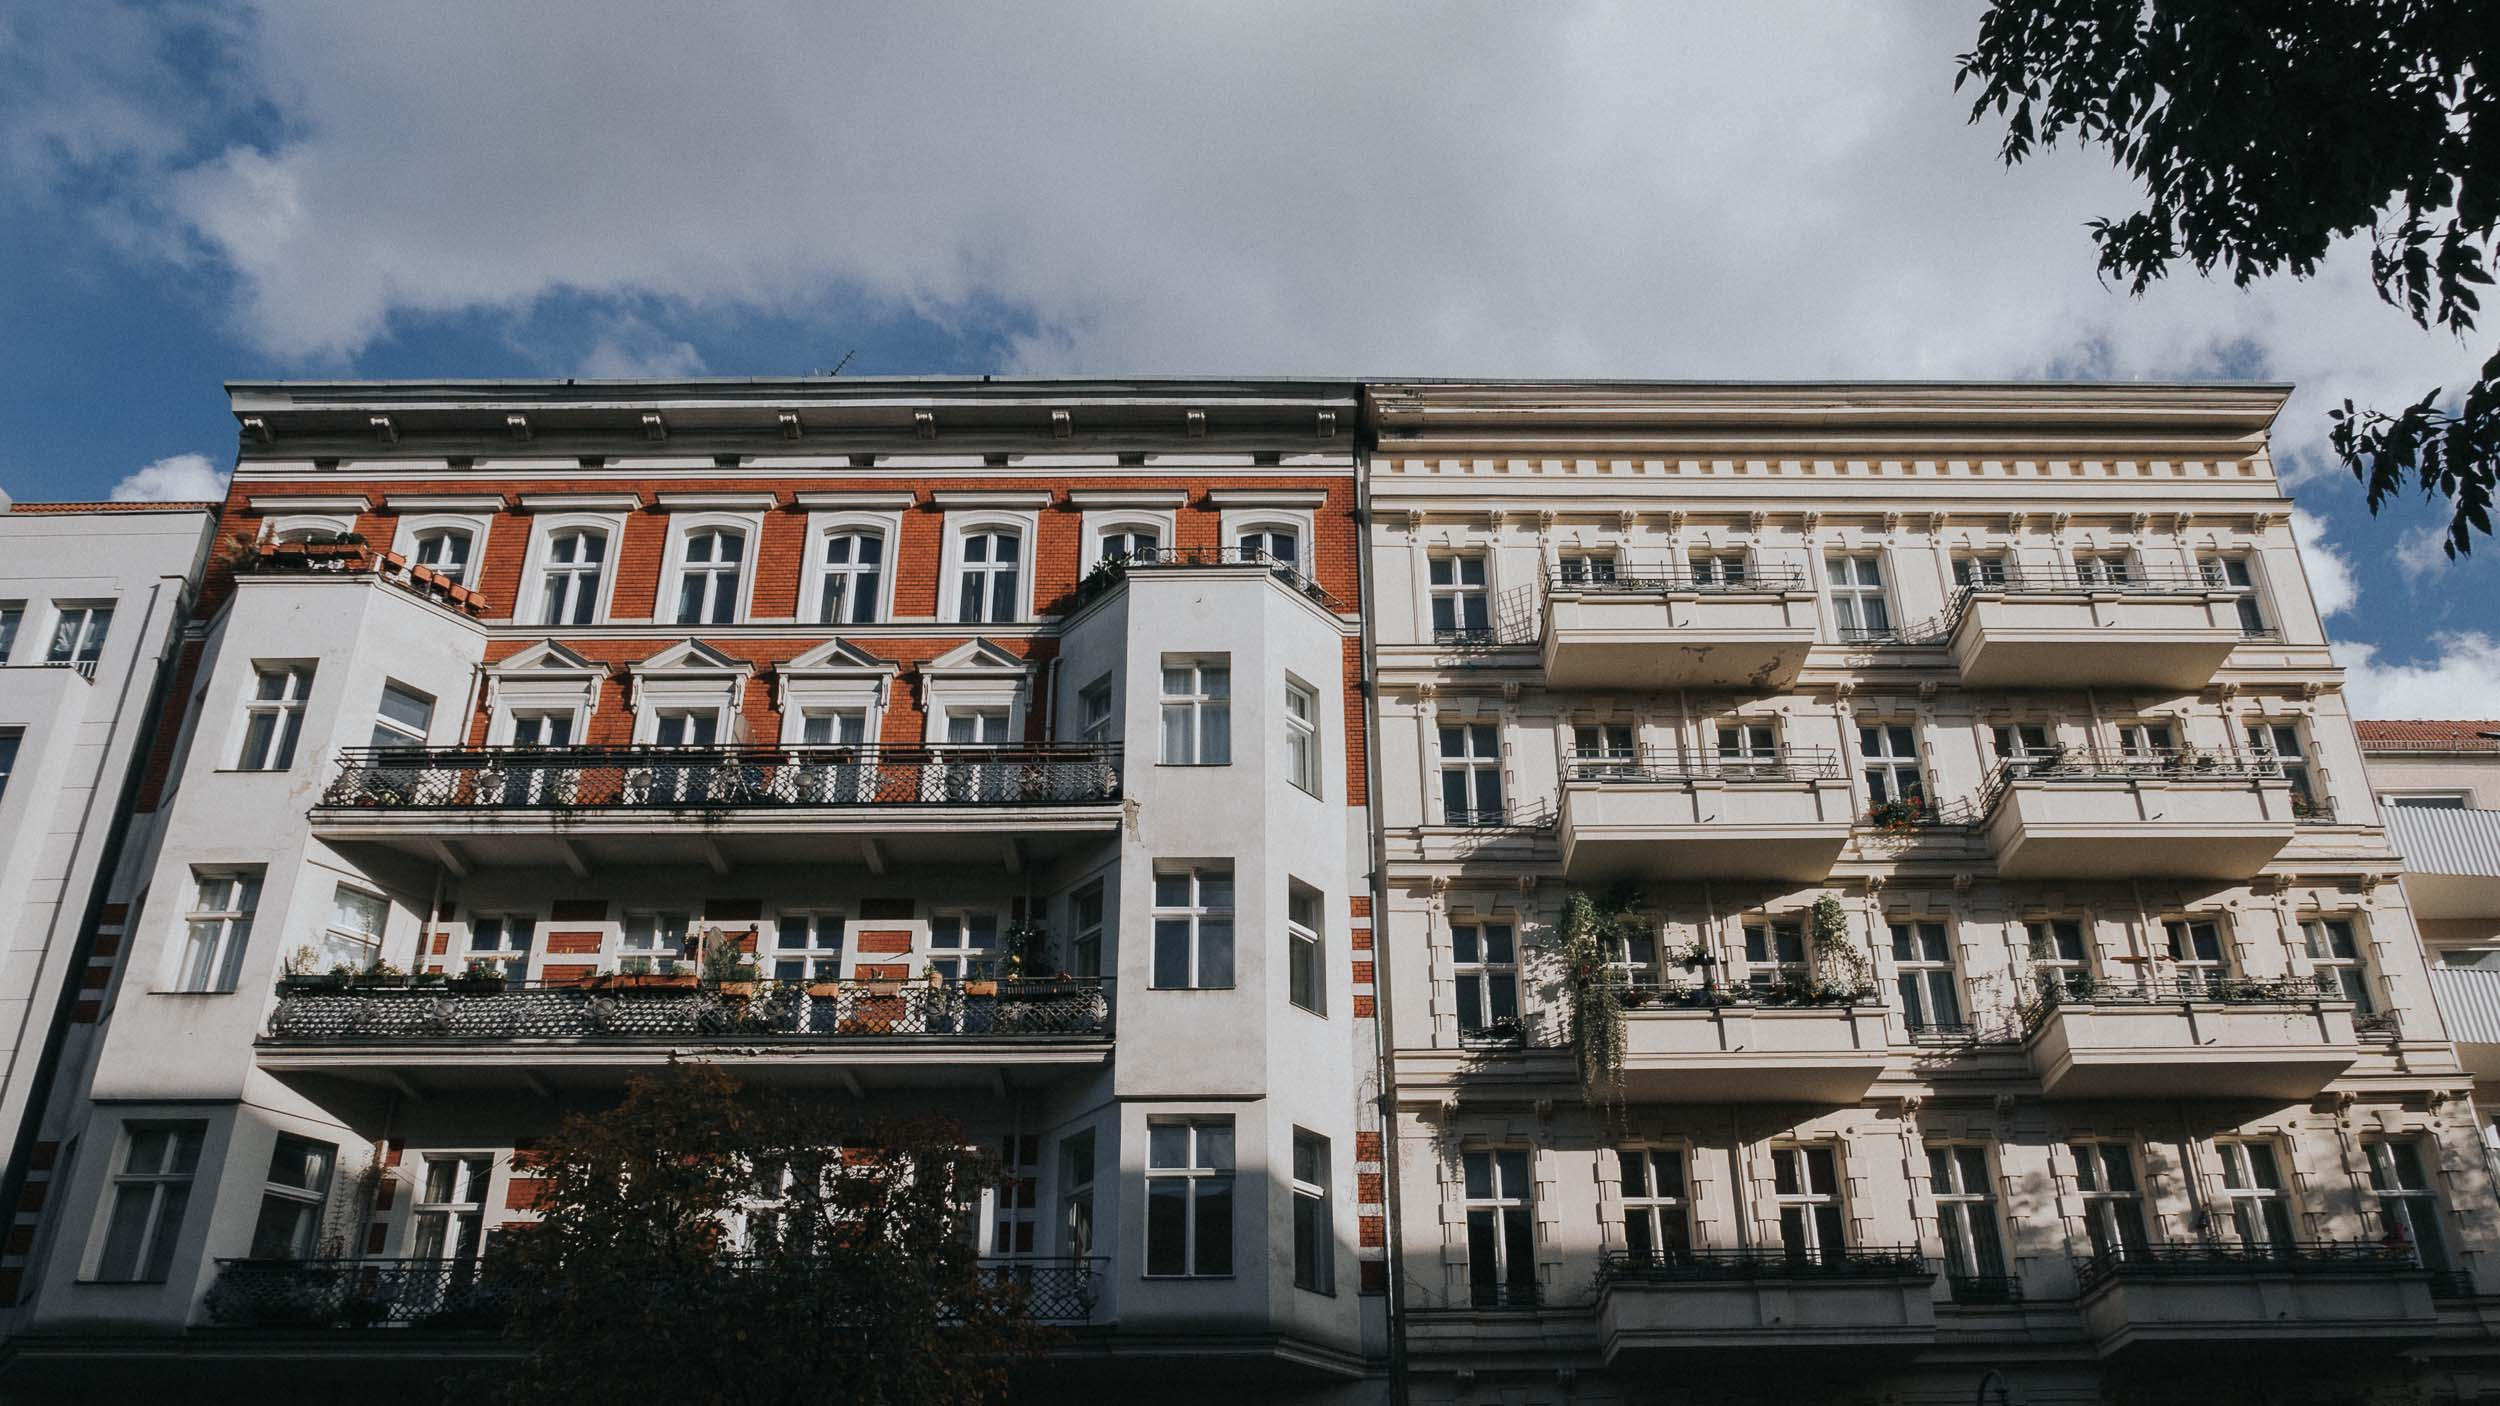 Check out photos from my recent trip to Berlin.